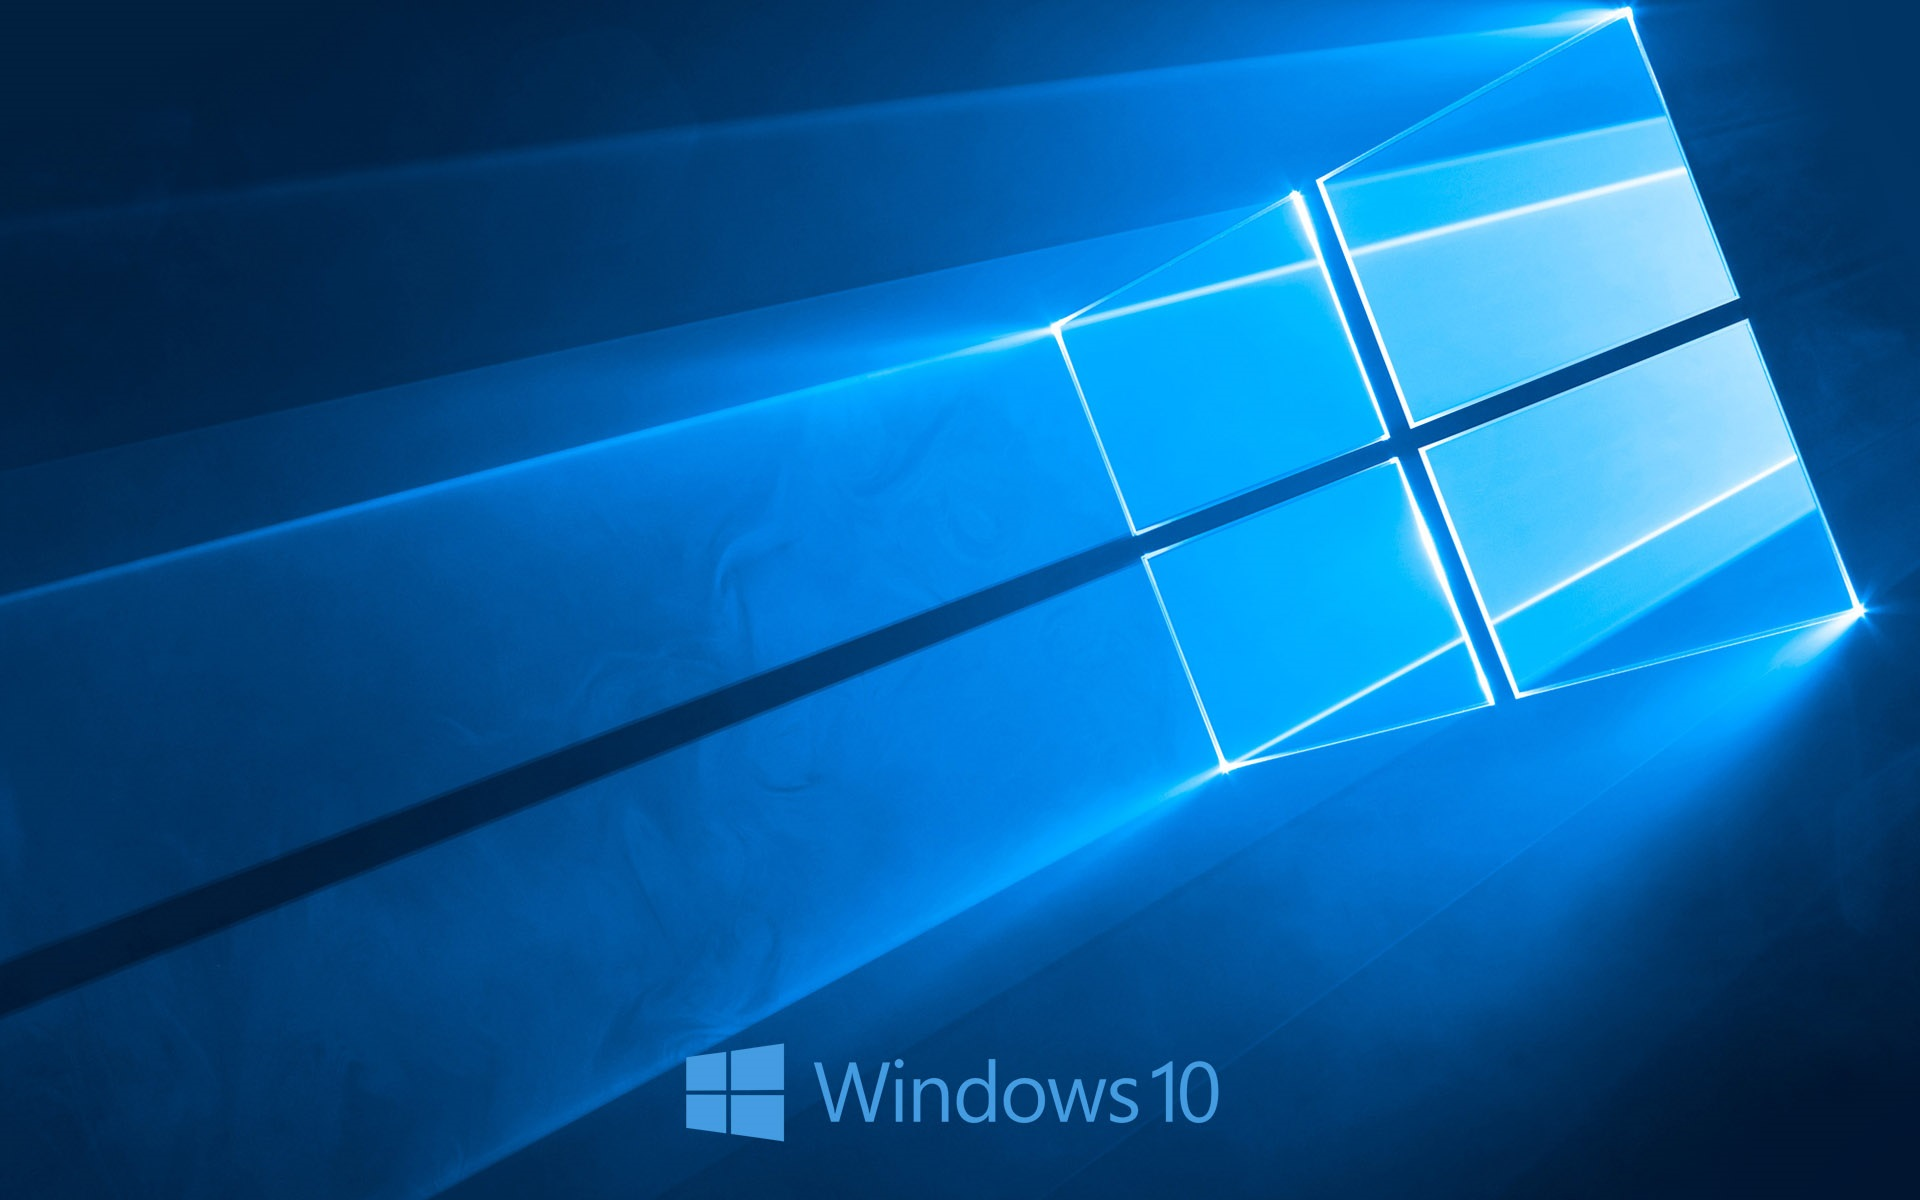 Wallpaper Windows 10 System Logo Blue Style Background 1920x1200